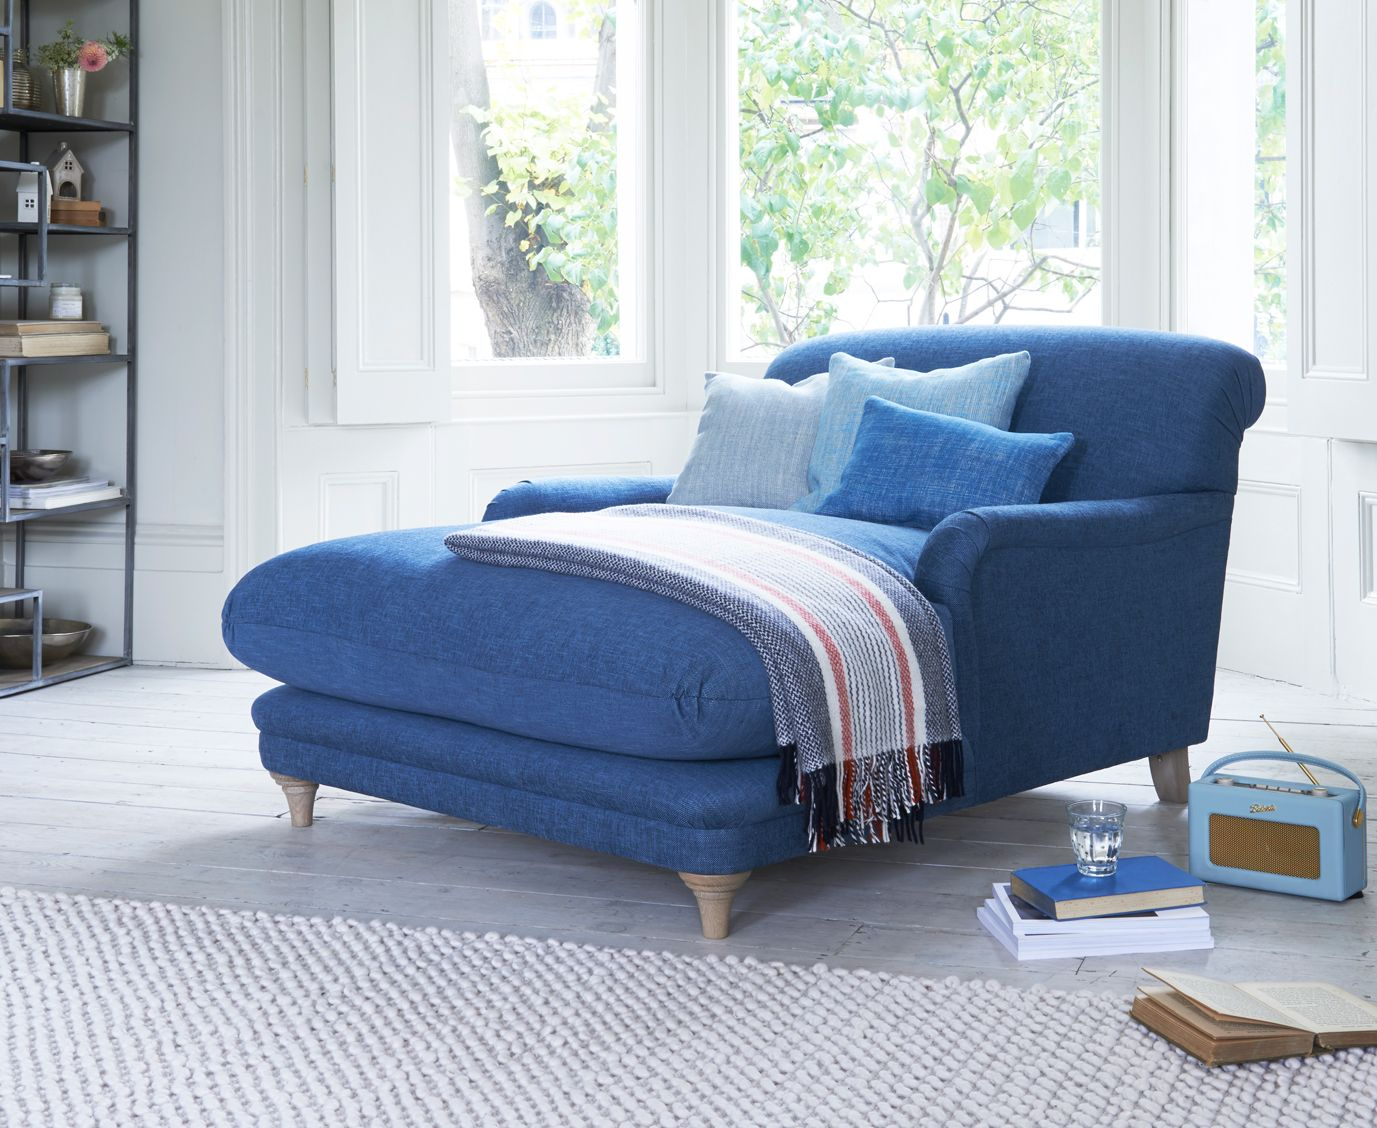 Pudding Love Seat Chaise : chaise seat - Sectionals, Sofas & Couches